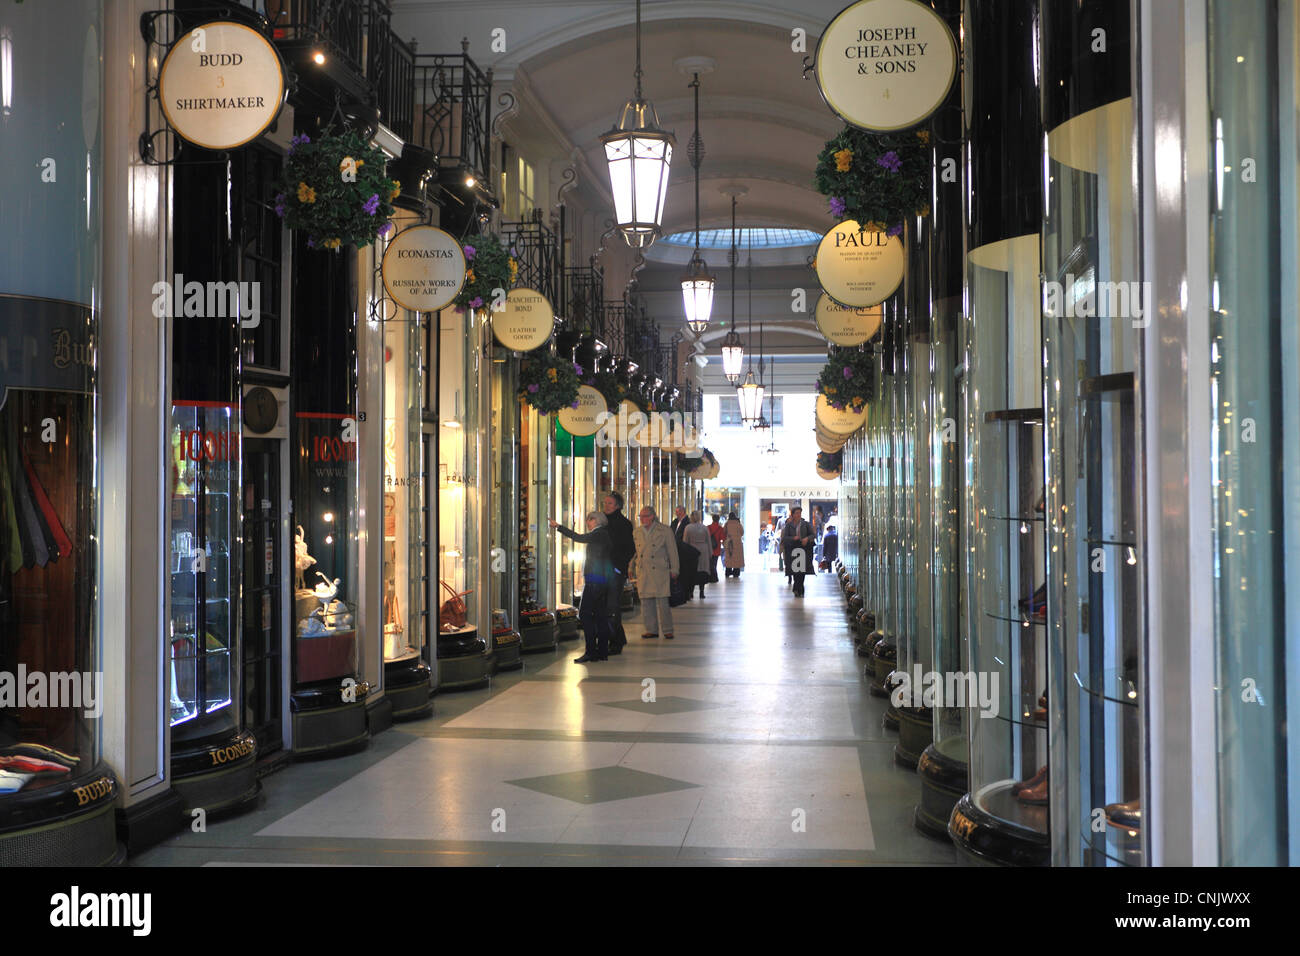 The Piccadilly Arcade Mayfair St James London - Stock Image